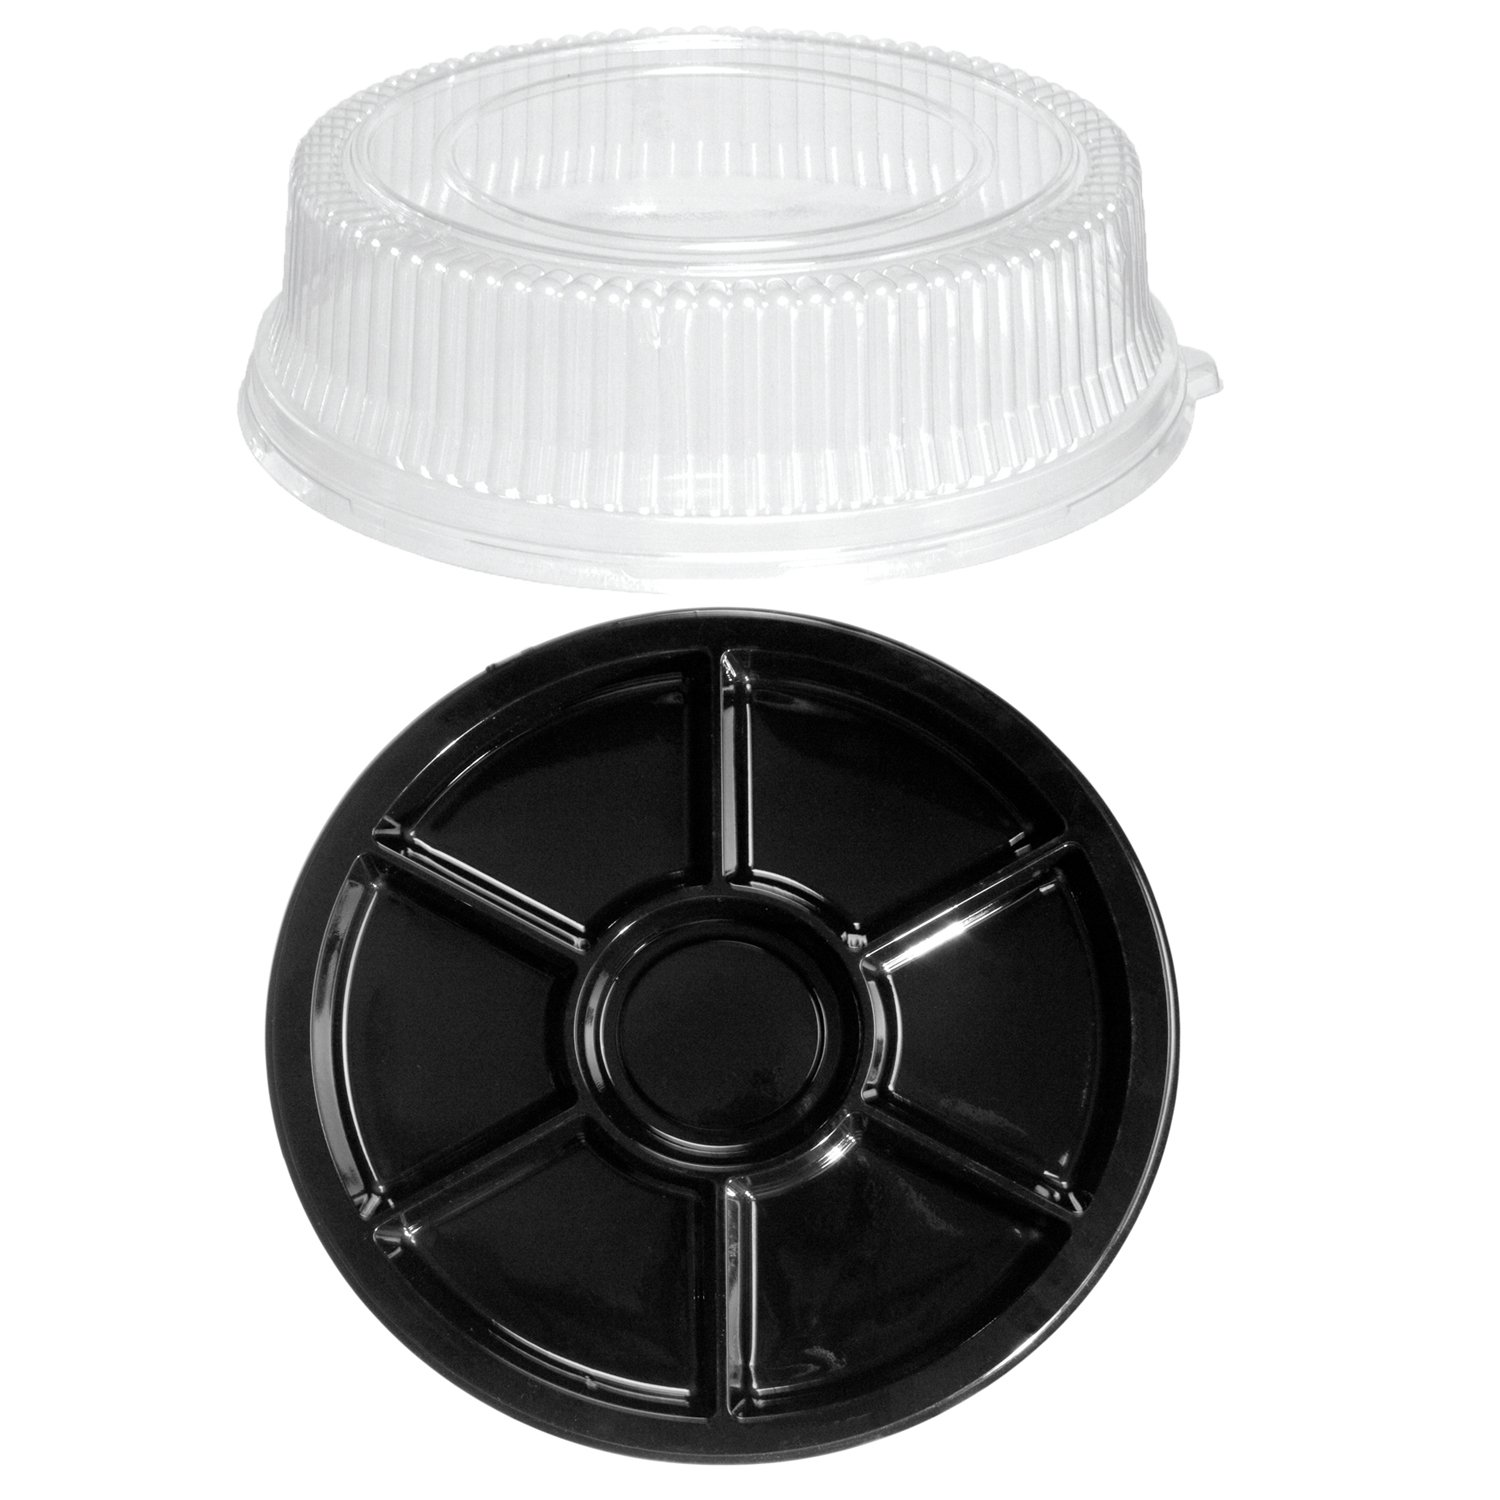 Party Essentials N012321 Soft Plastic 12-Inch Round Divided Serving/Catering Trays, Black with Clear Dome Lids, Set of 2